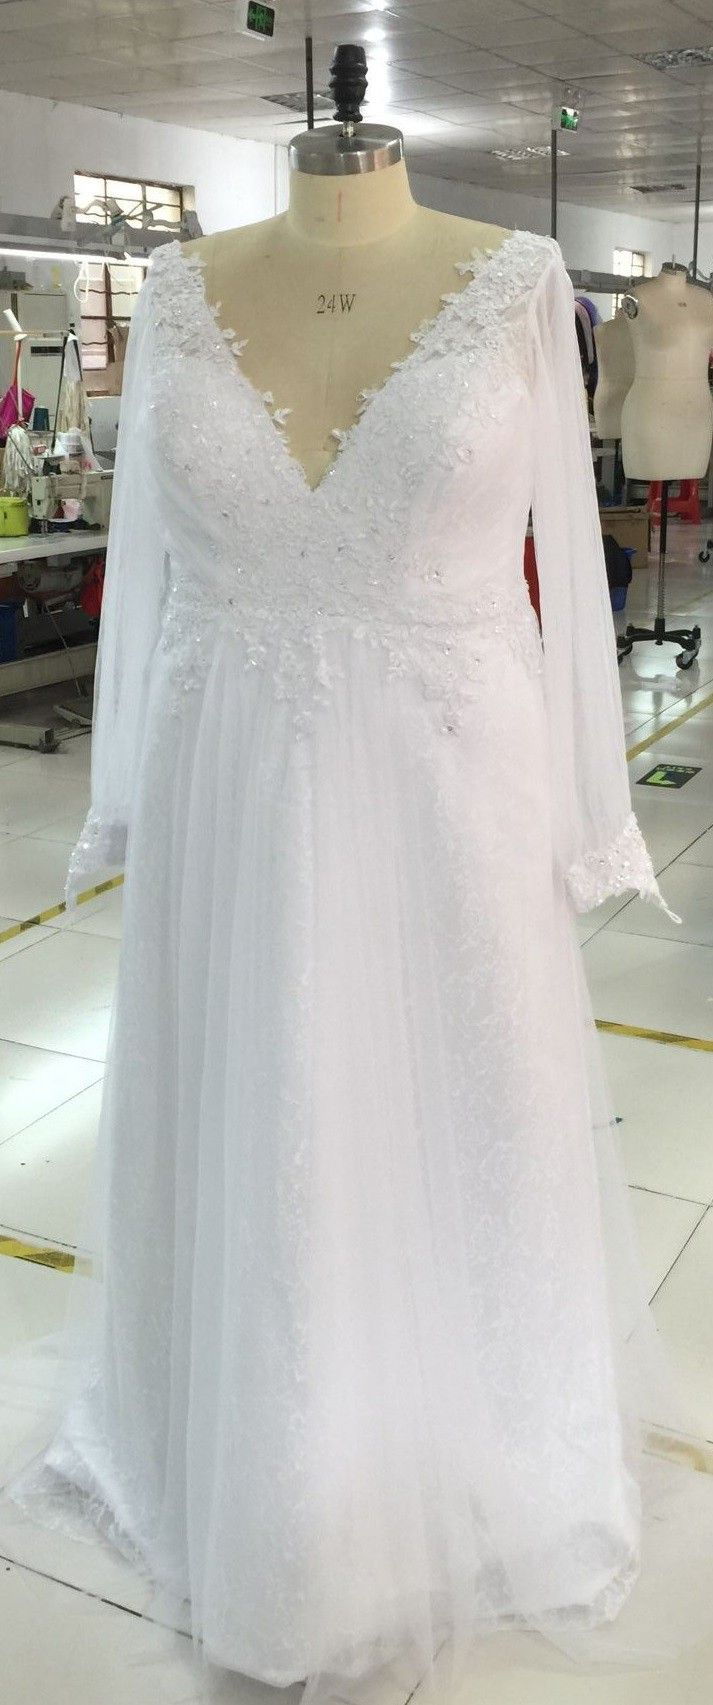 Plus size long dresses for wedding  Plus Size Bridal Dresses with long sleeves by Darius Bridal  Bridal